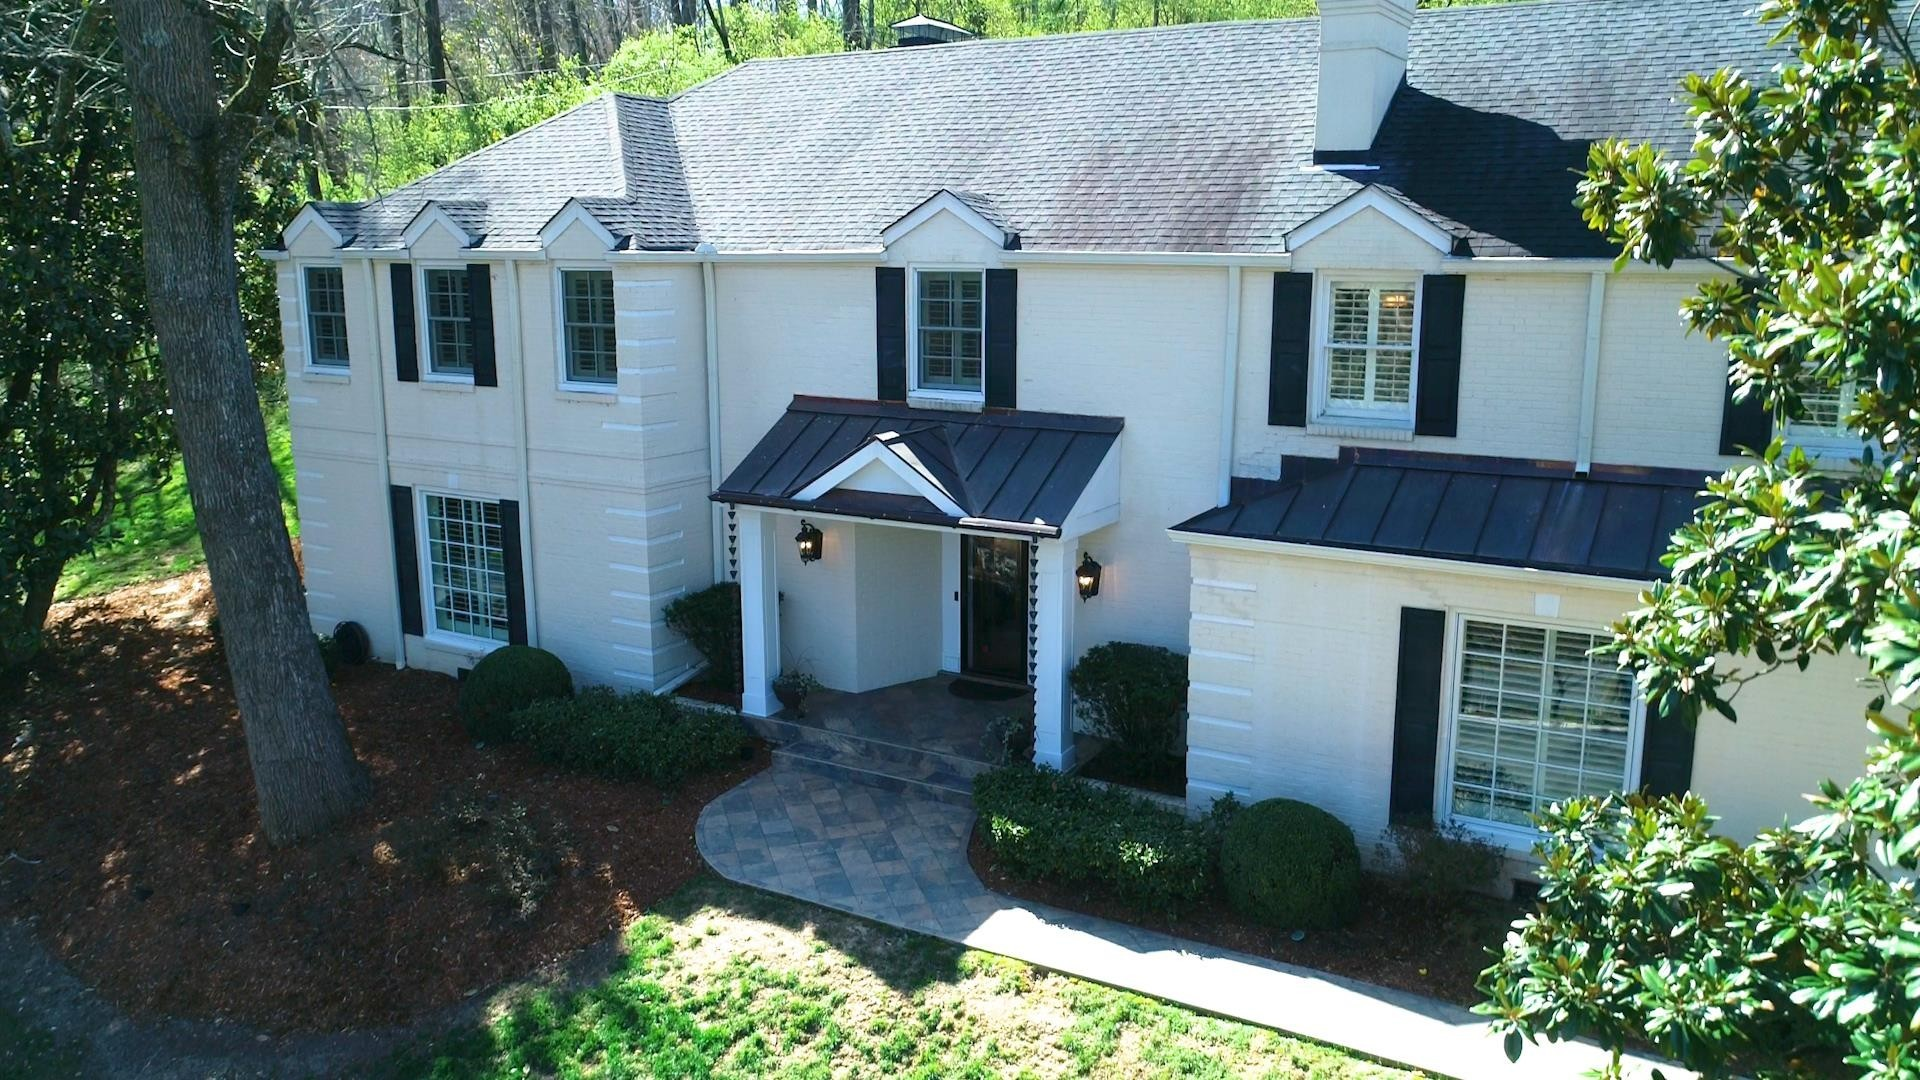 Wooded 2.77 Acres! Dual masters, New Appliances, Home Inspection complete, plantation shutters throughout, two office/studio spaces, stone patio refinished 7/20, with built in fireplace, great for entertaining.  (Warranty Included)